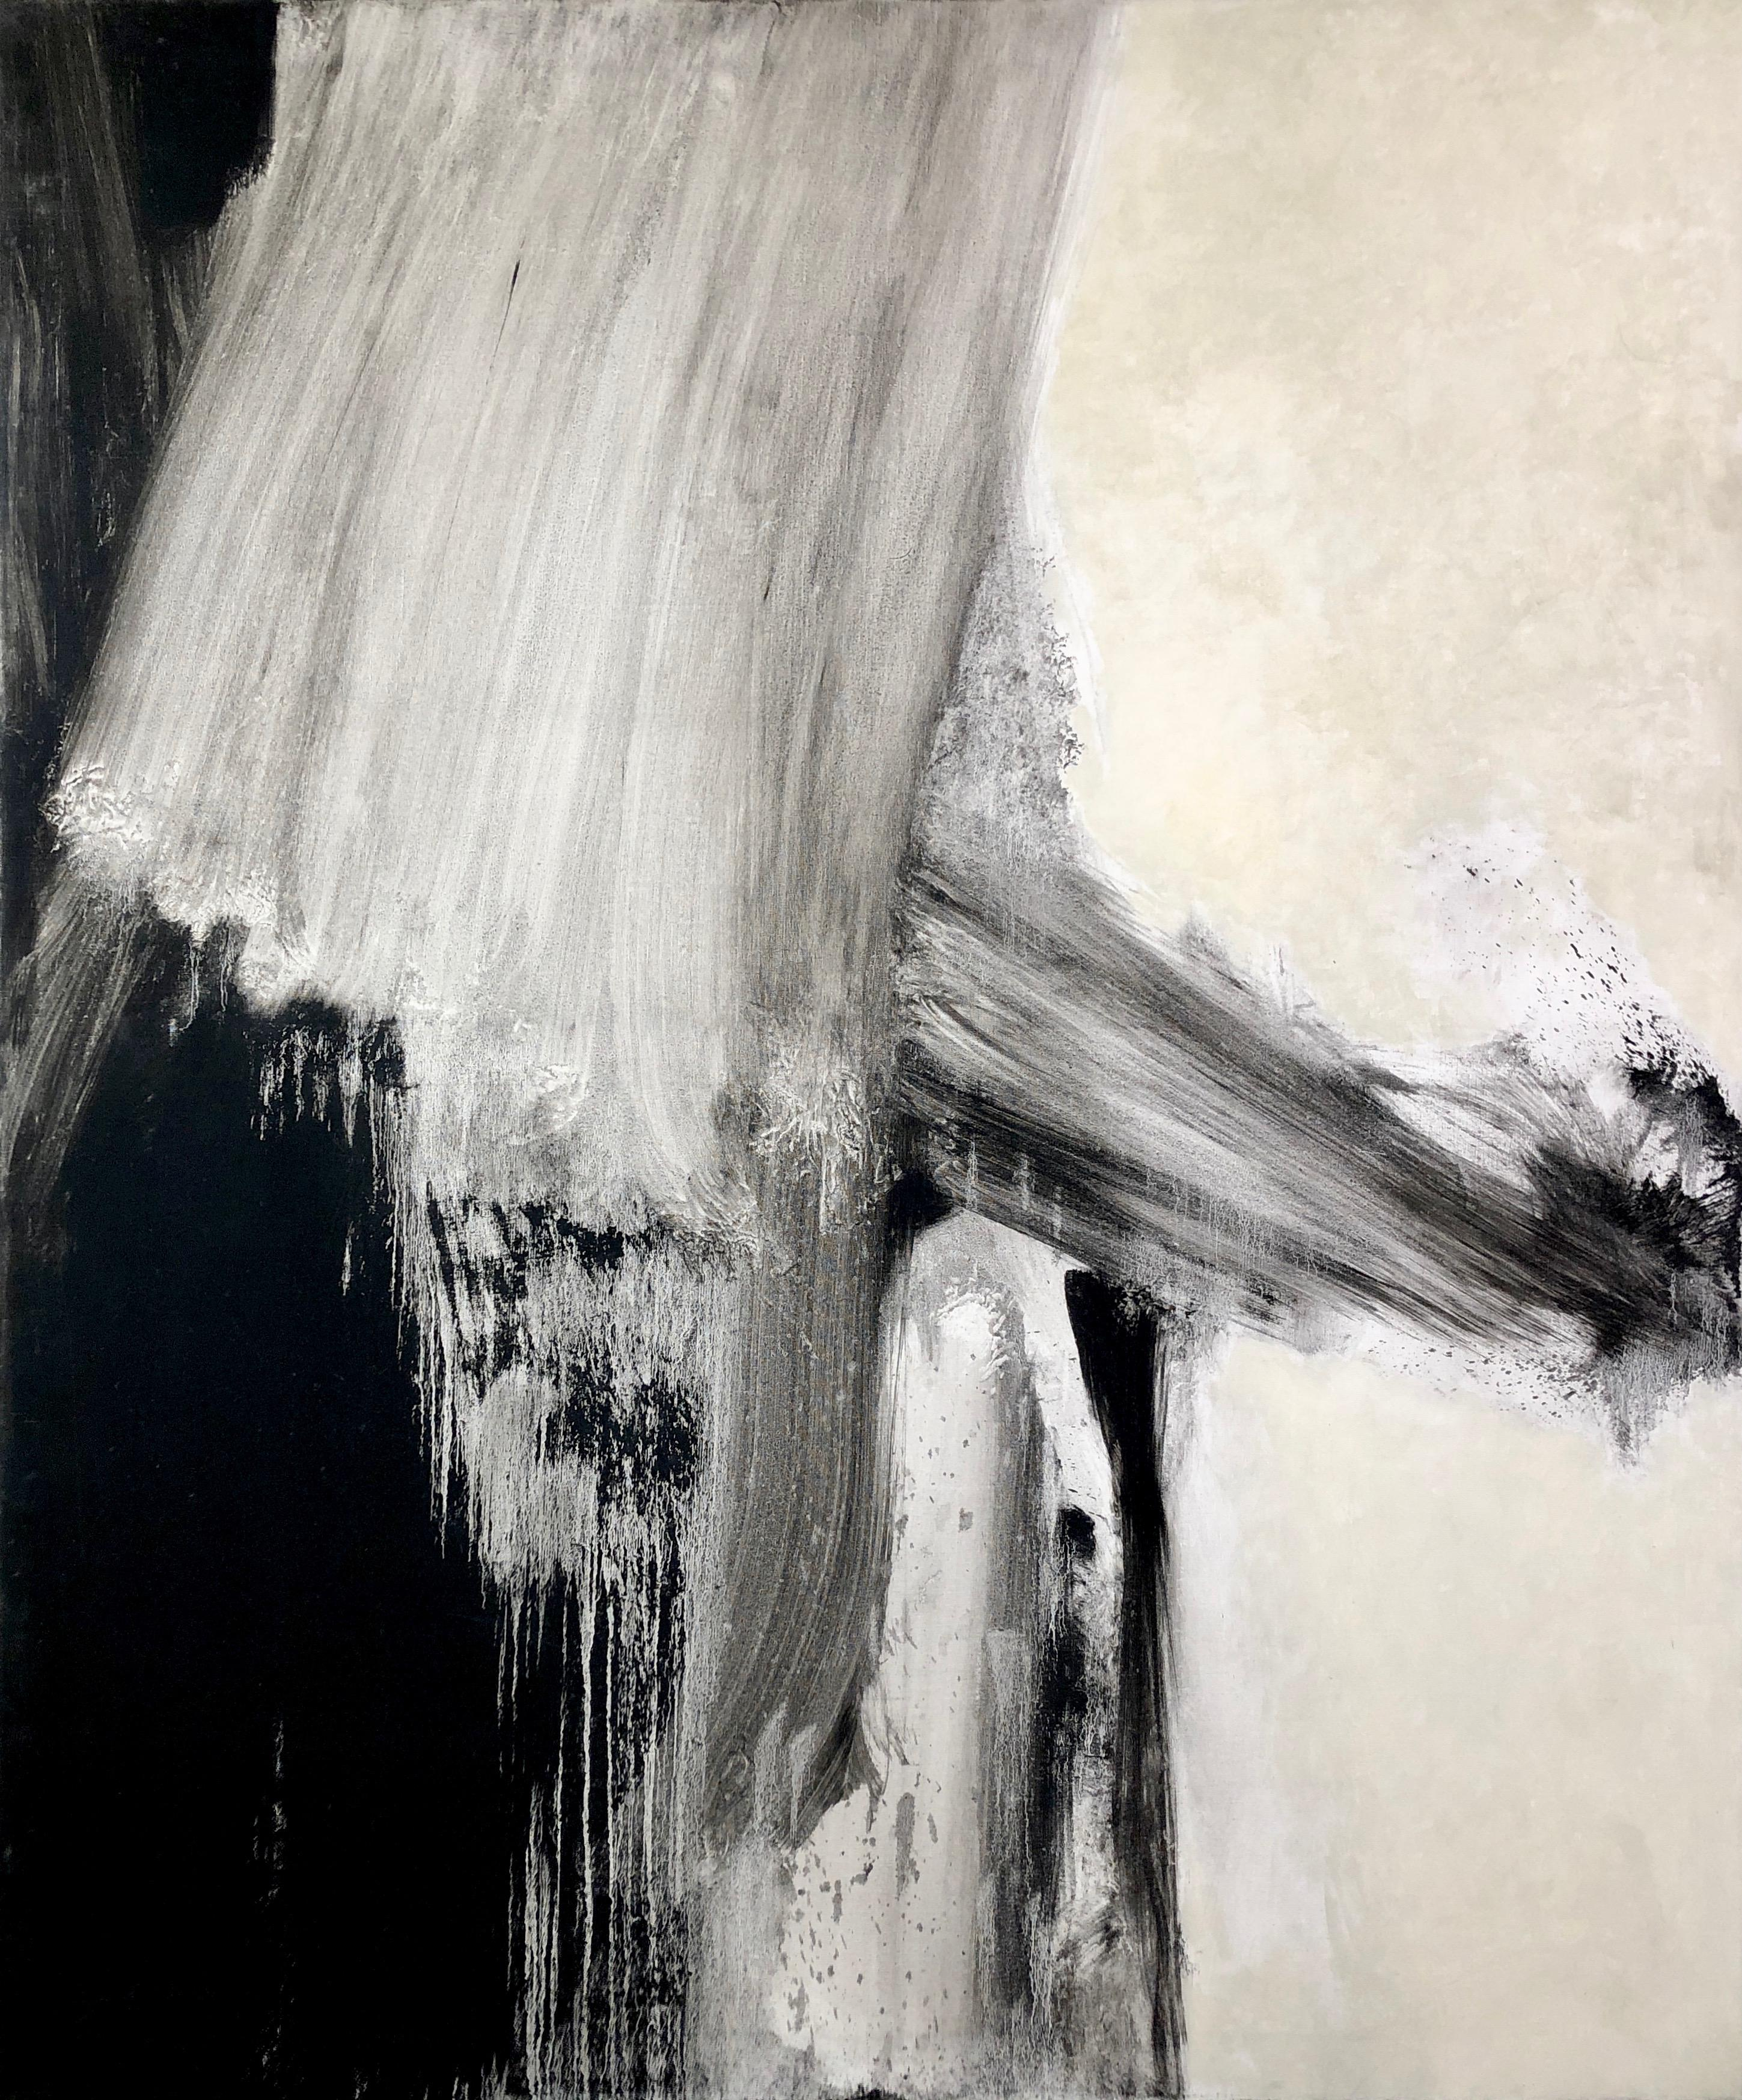 Seacoast, John Hubbard. Large abstract oil painting, black and white gestural